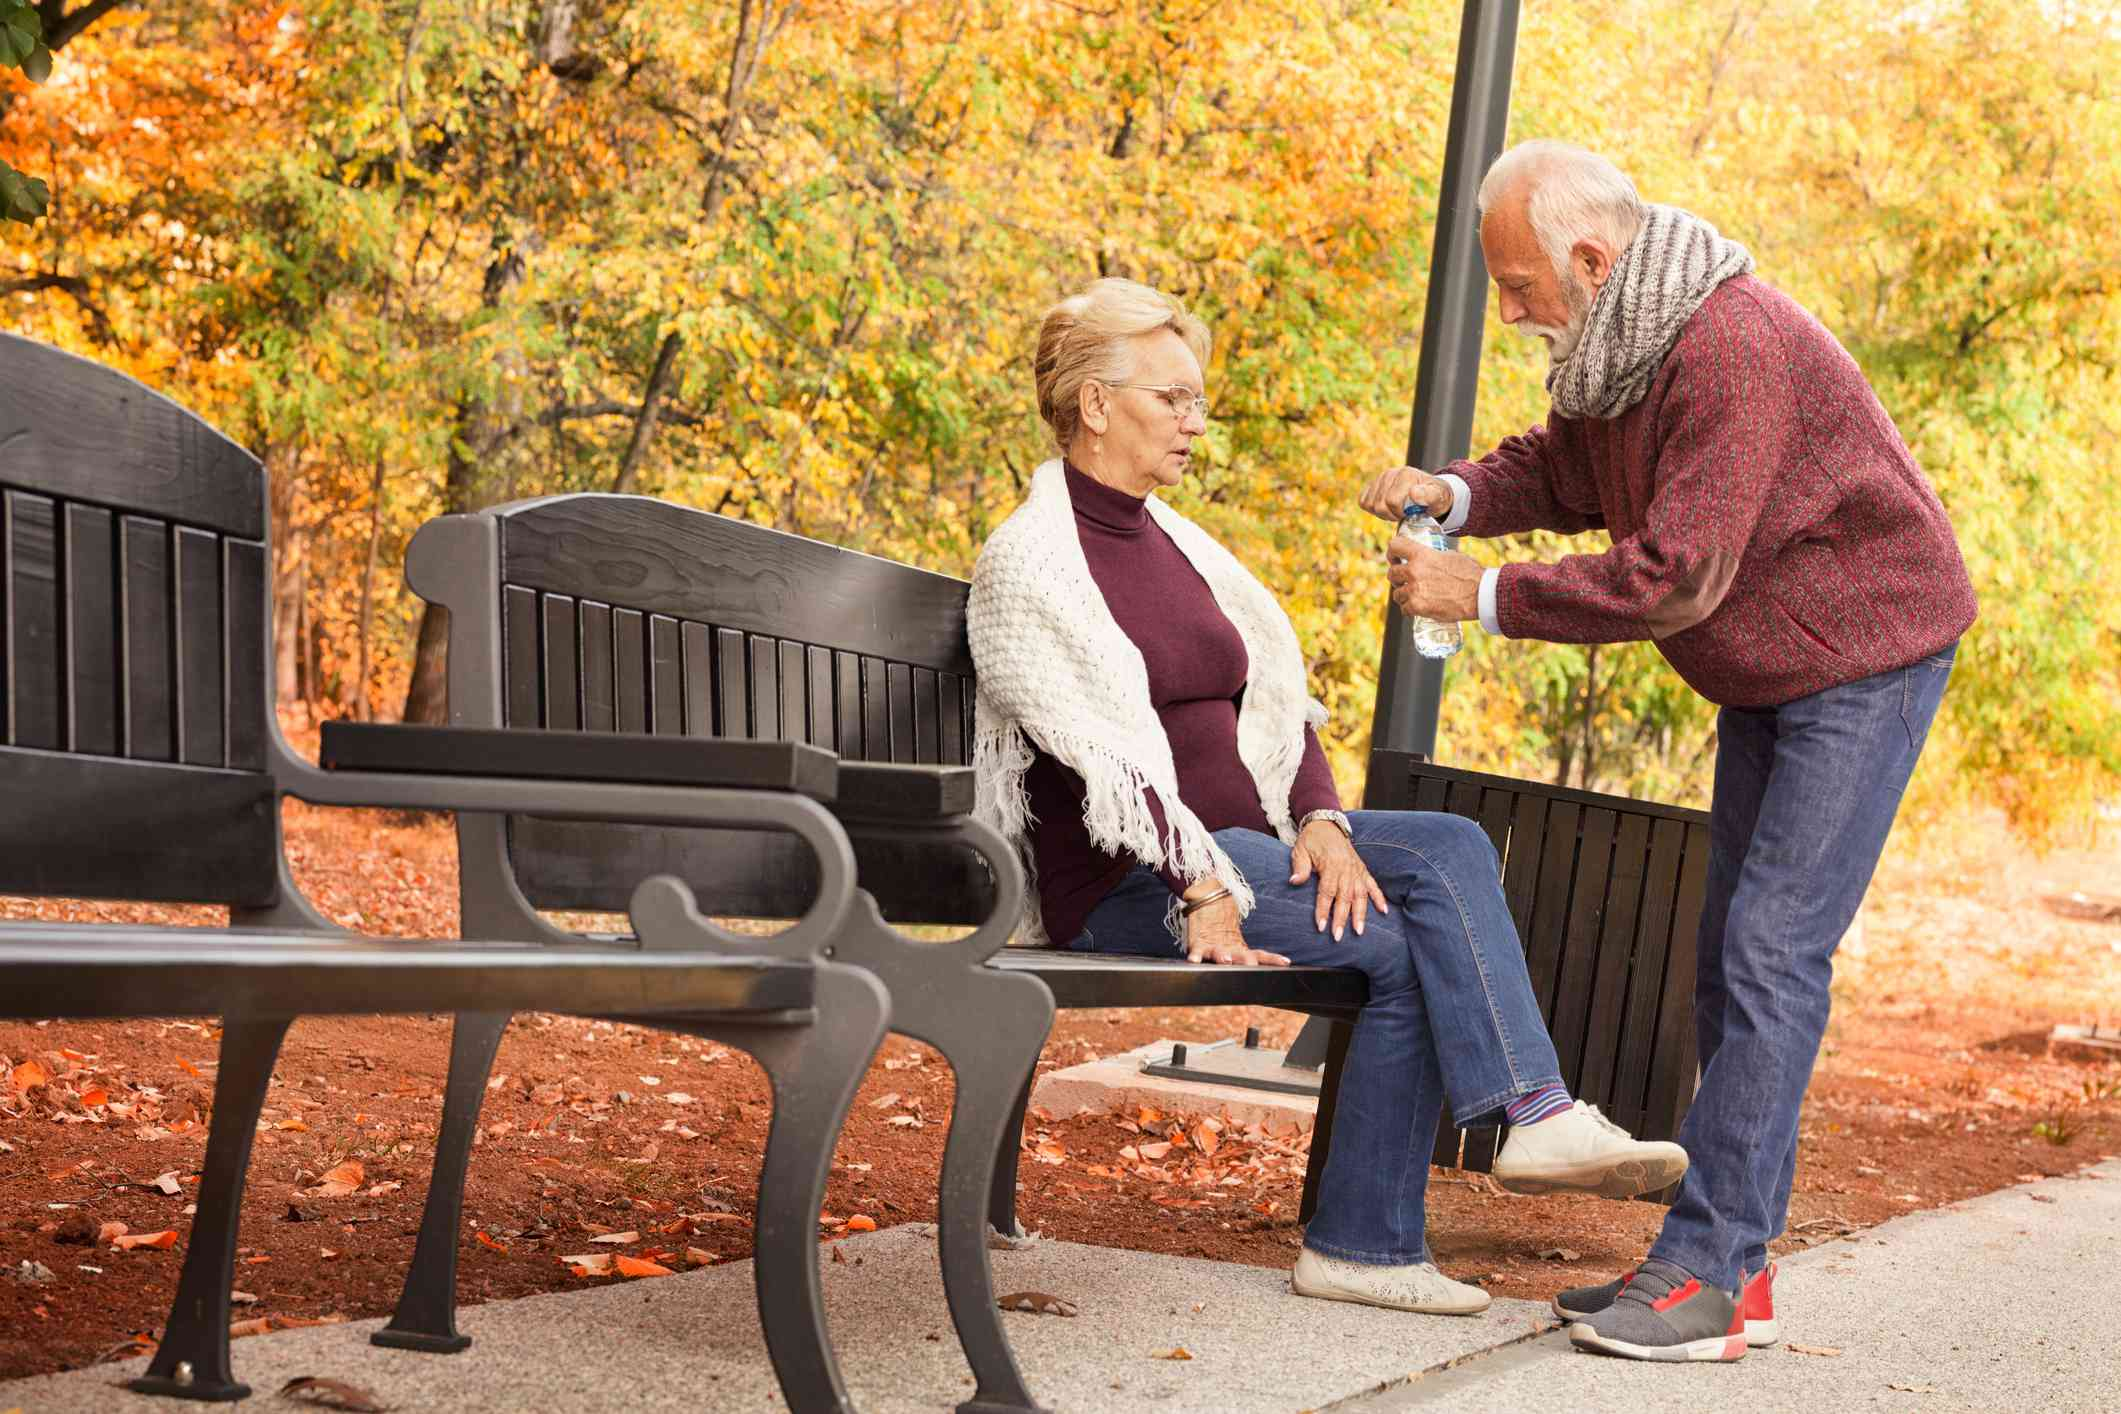 Woman sitting on a park bench while man opens water bottle for her